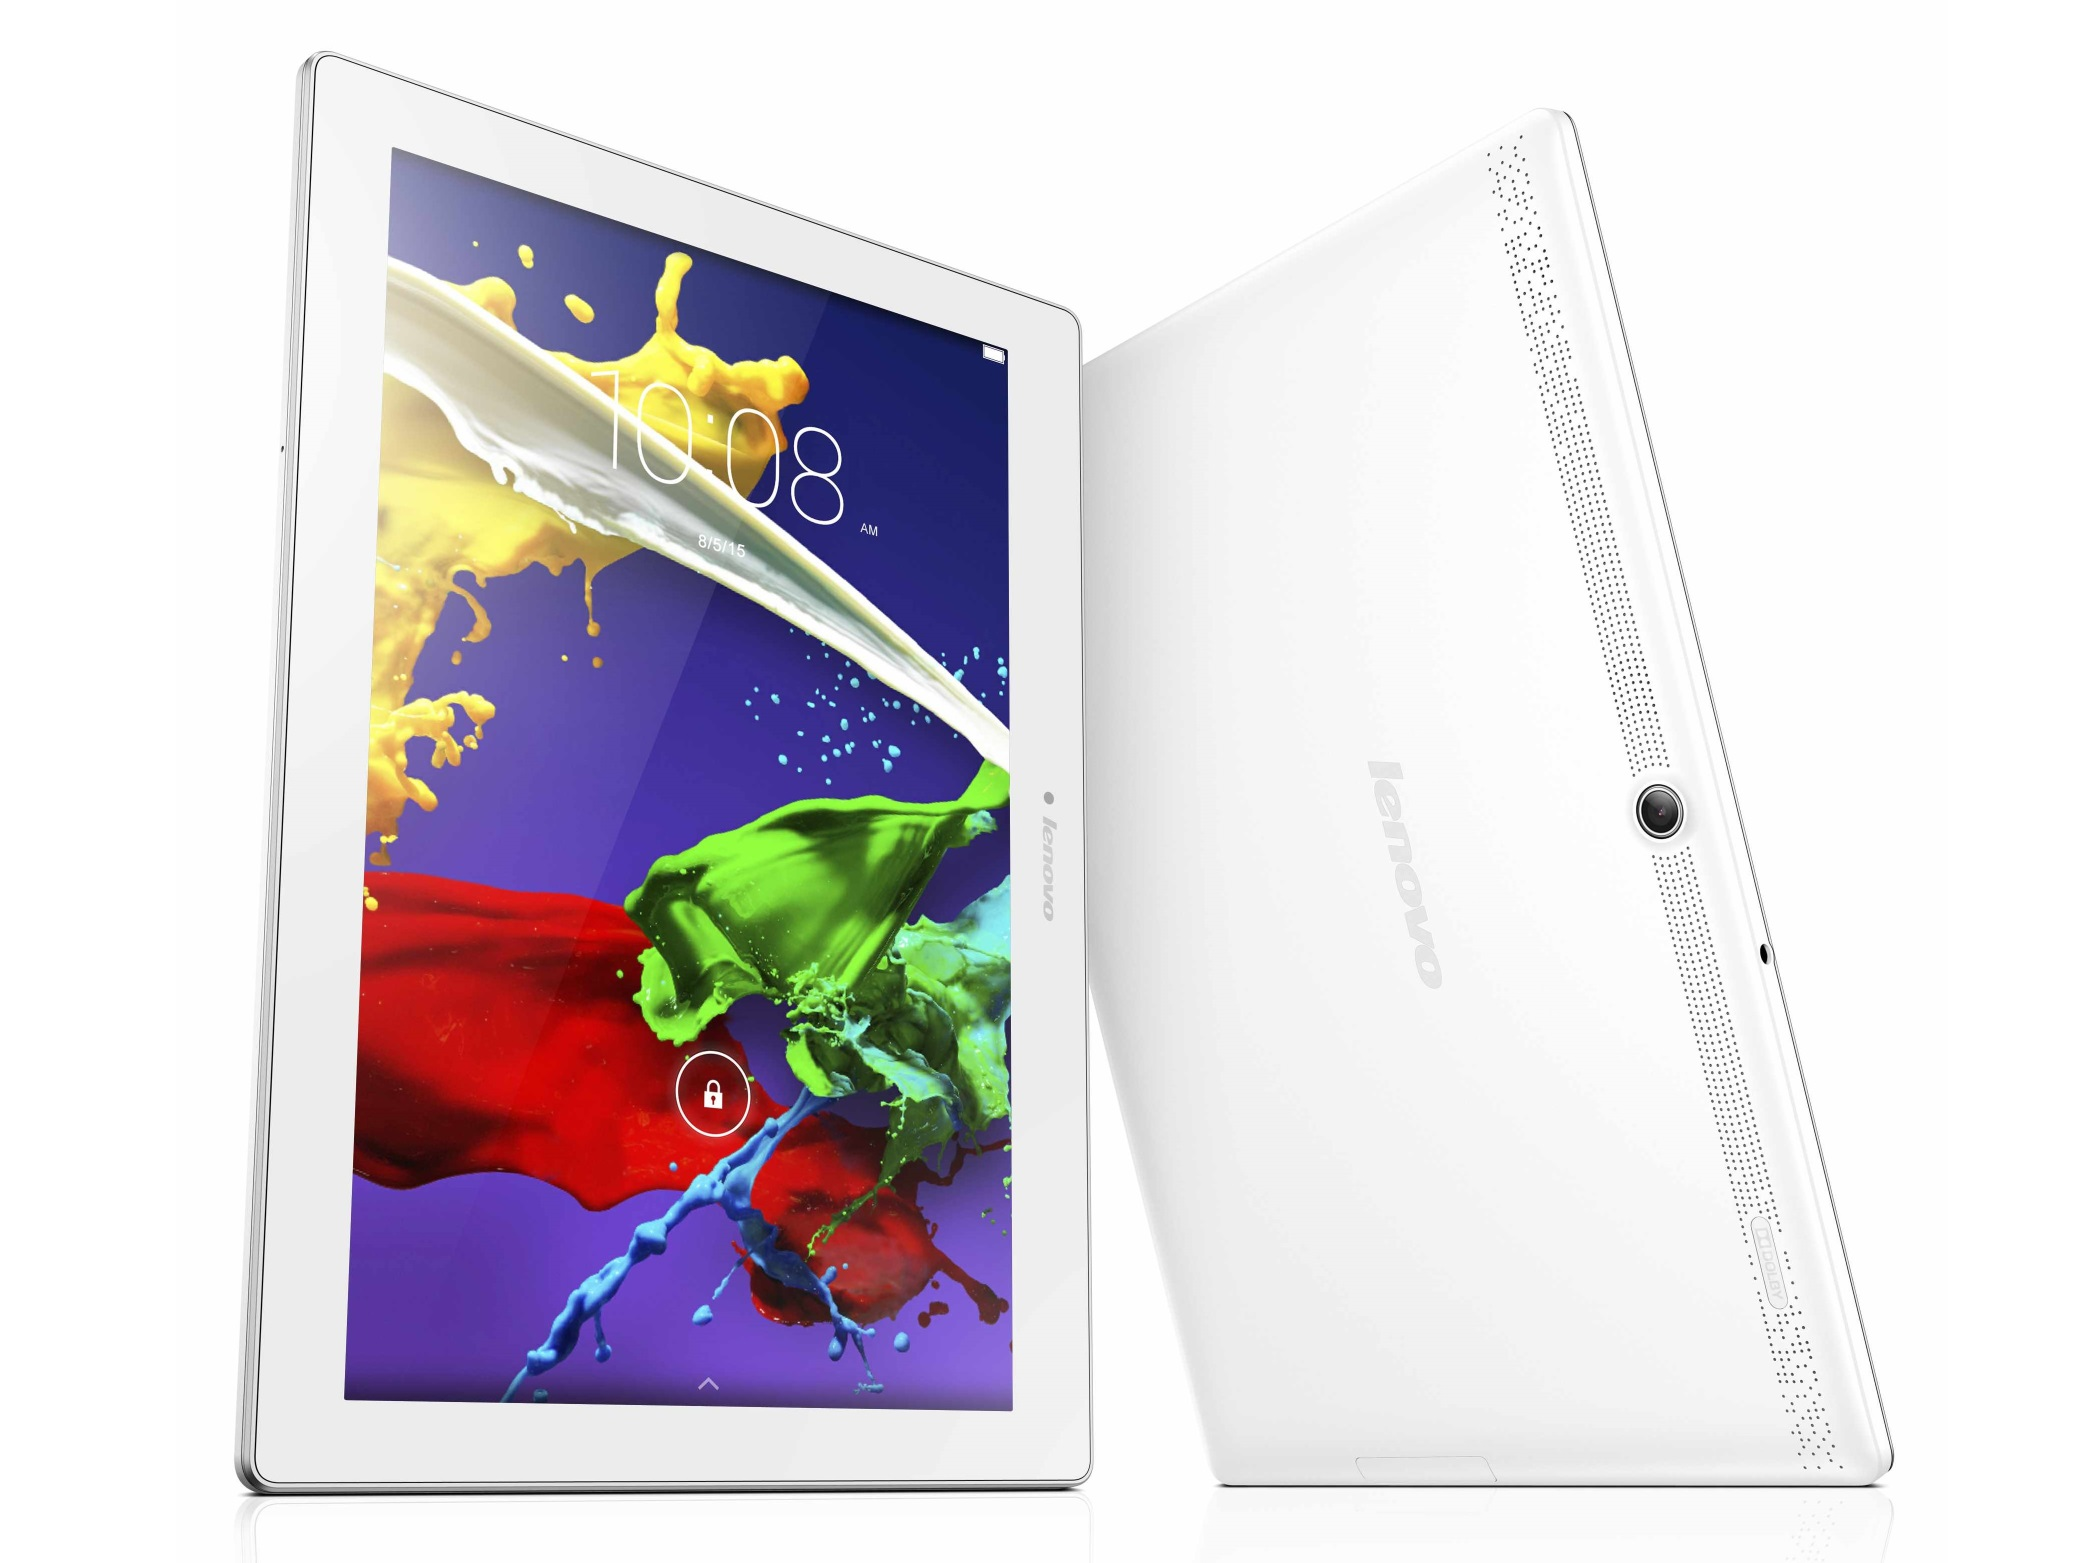 Lenovo TAB 2 A10 images and specs 1